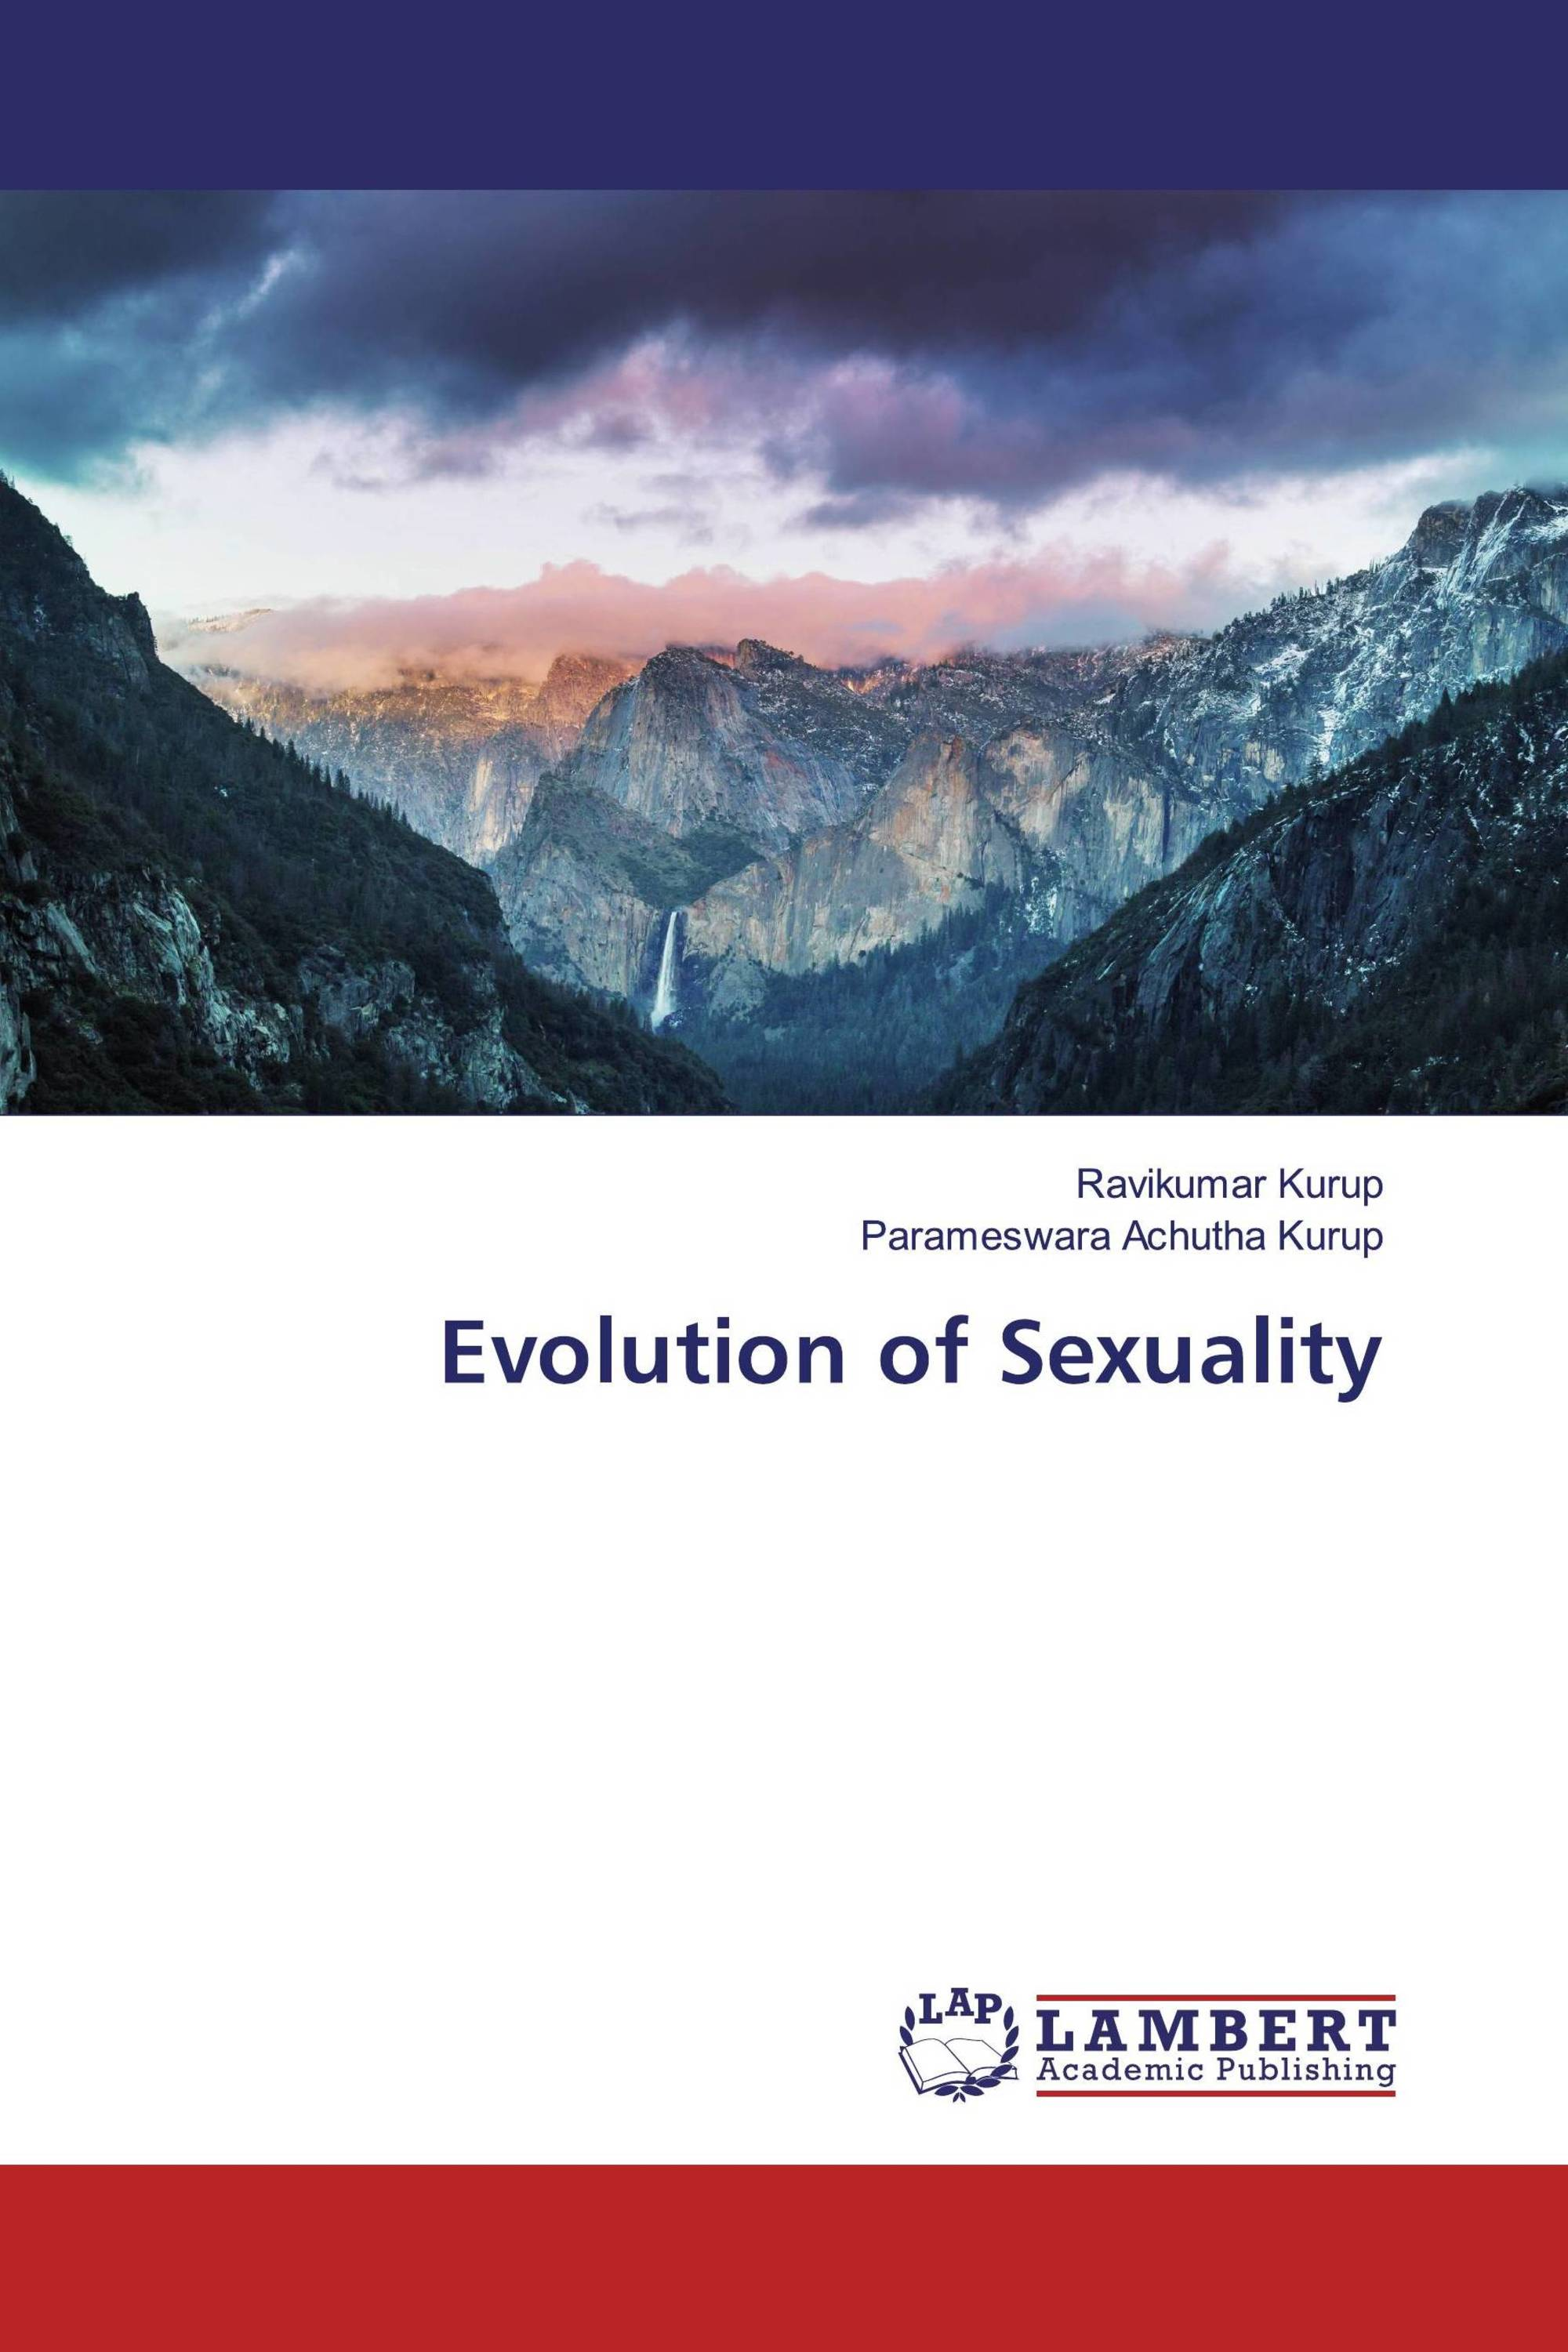 Evolution of Sexuality